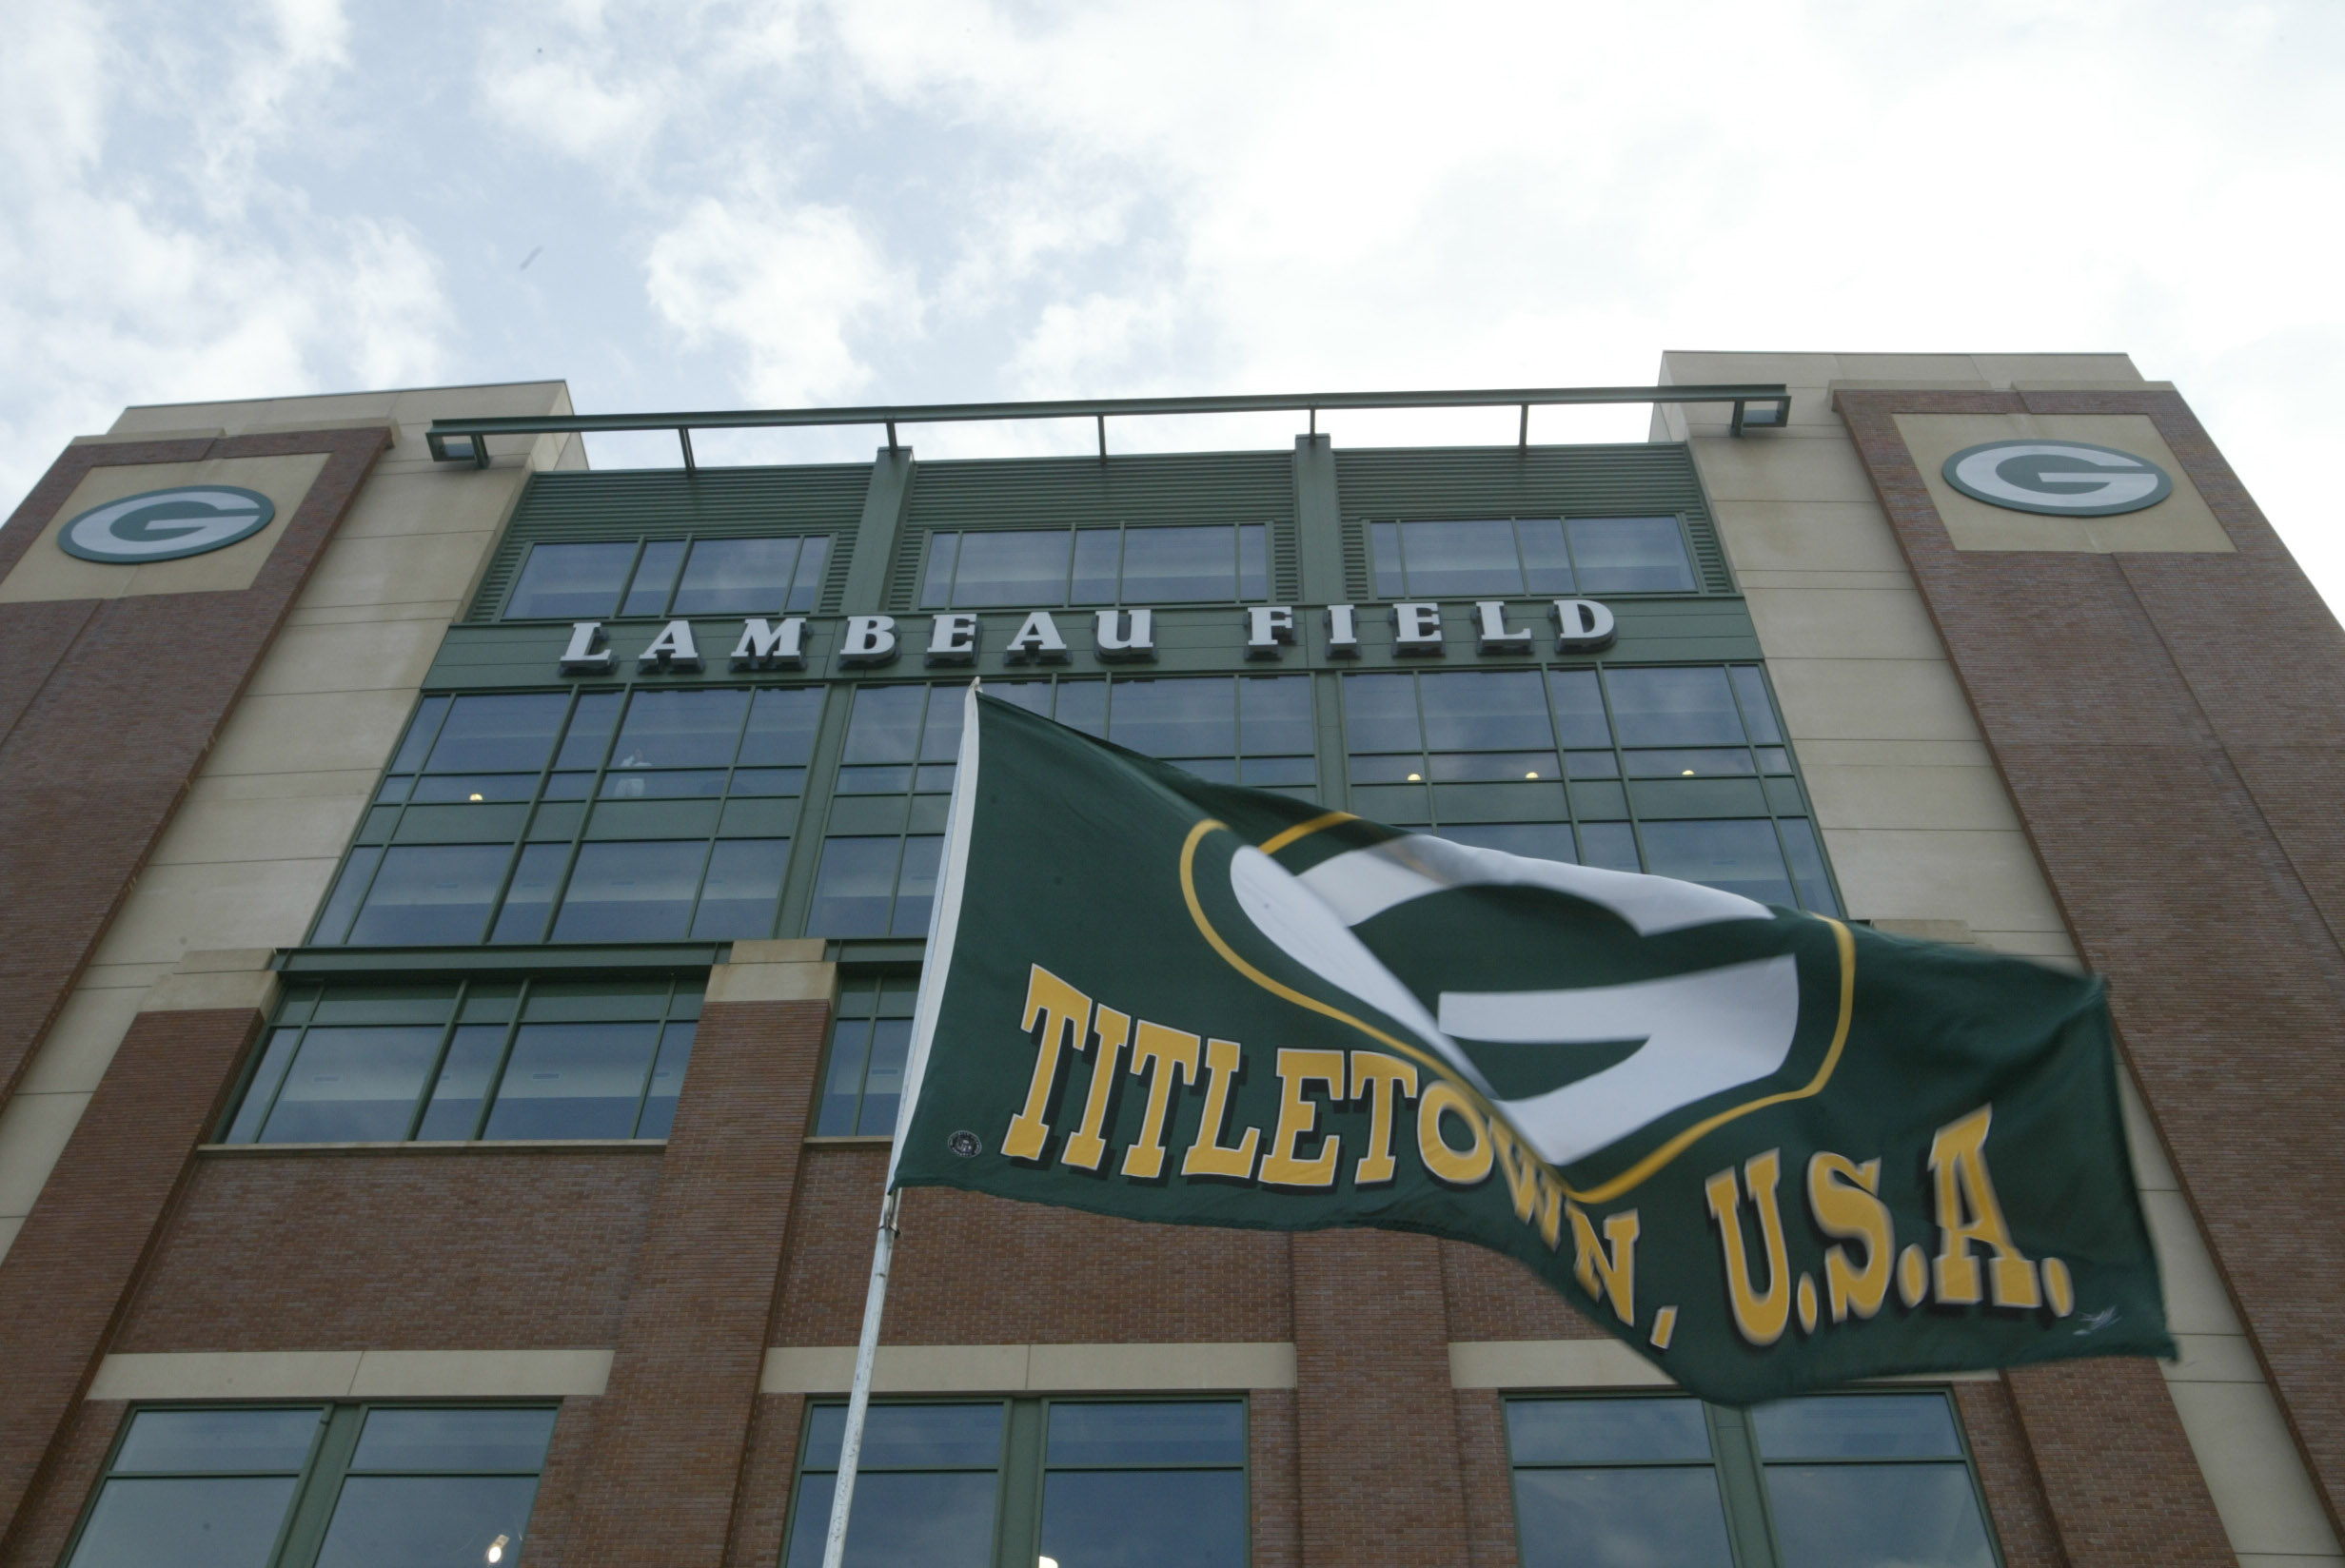 NFL 2005: Tampa Bay Buccaneers at Green Bay Packers